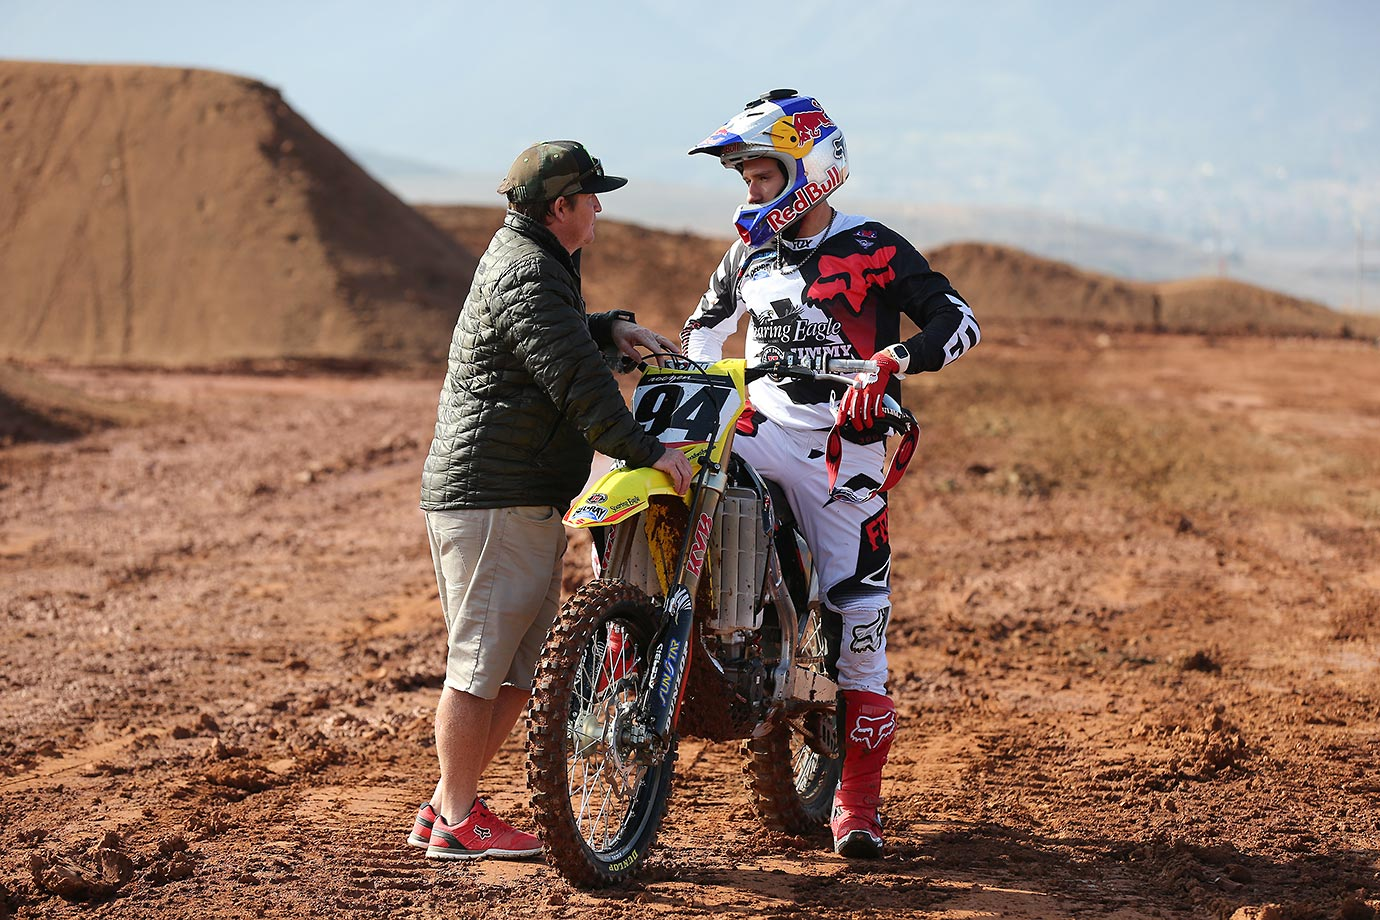 Ken Roczen, right, talks with Ricky Carmichael after a few practice runs on the track.  Roczen rides the  No. 94 Suzuki for RCH Racing, which is co-owned by Cary Hart and Ricky Carmichael.